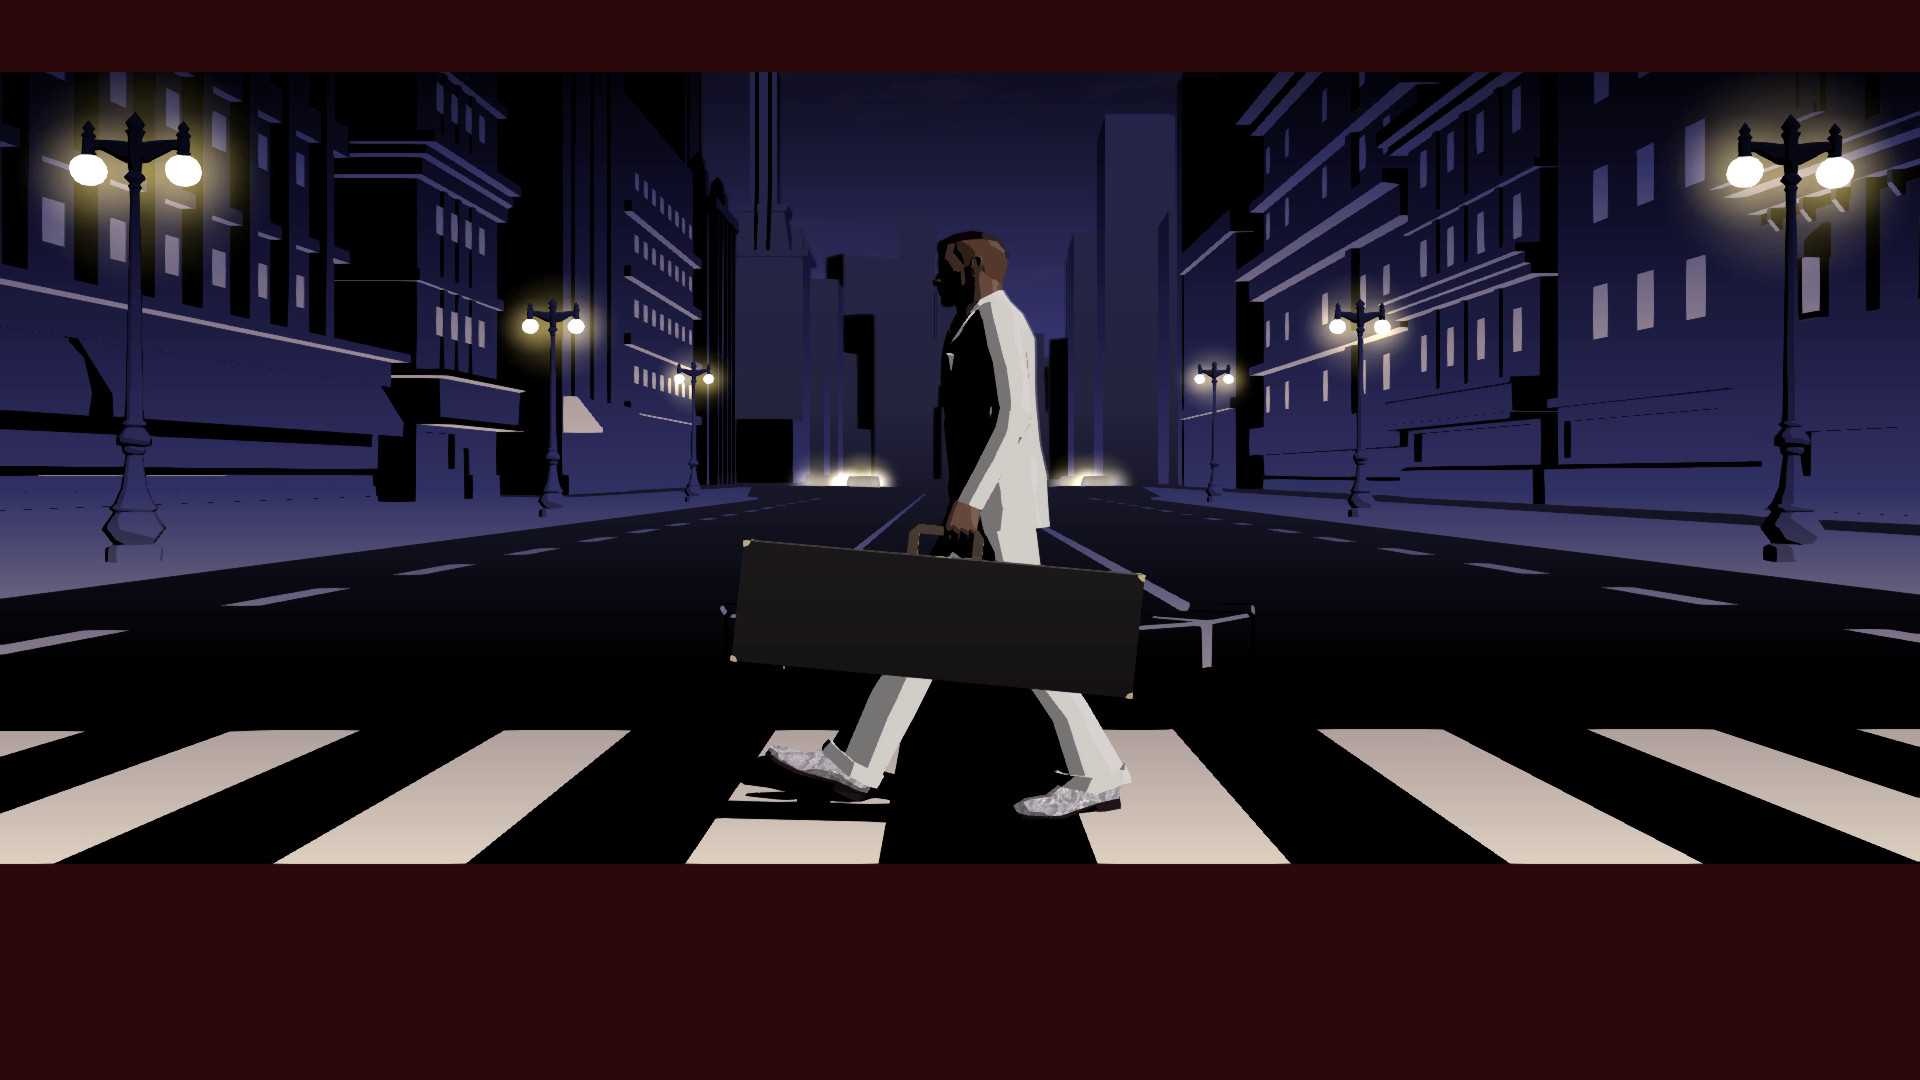 Killer7 is not coming to Switch, according to the studio that ported the PC version screenshot